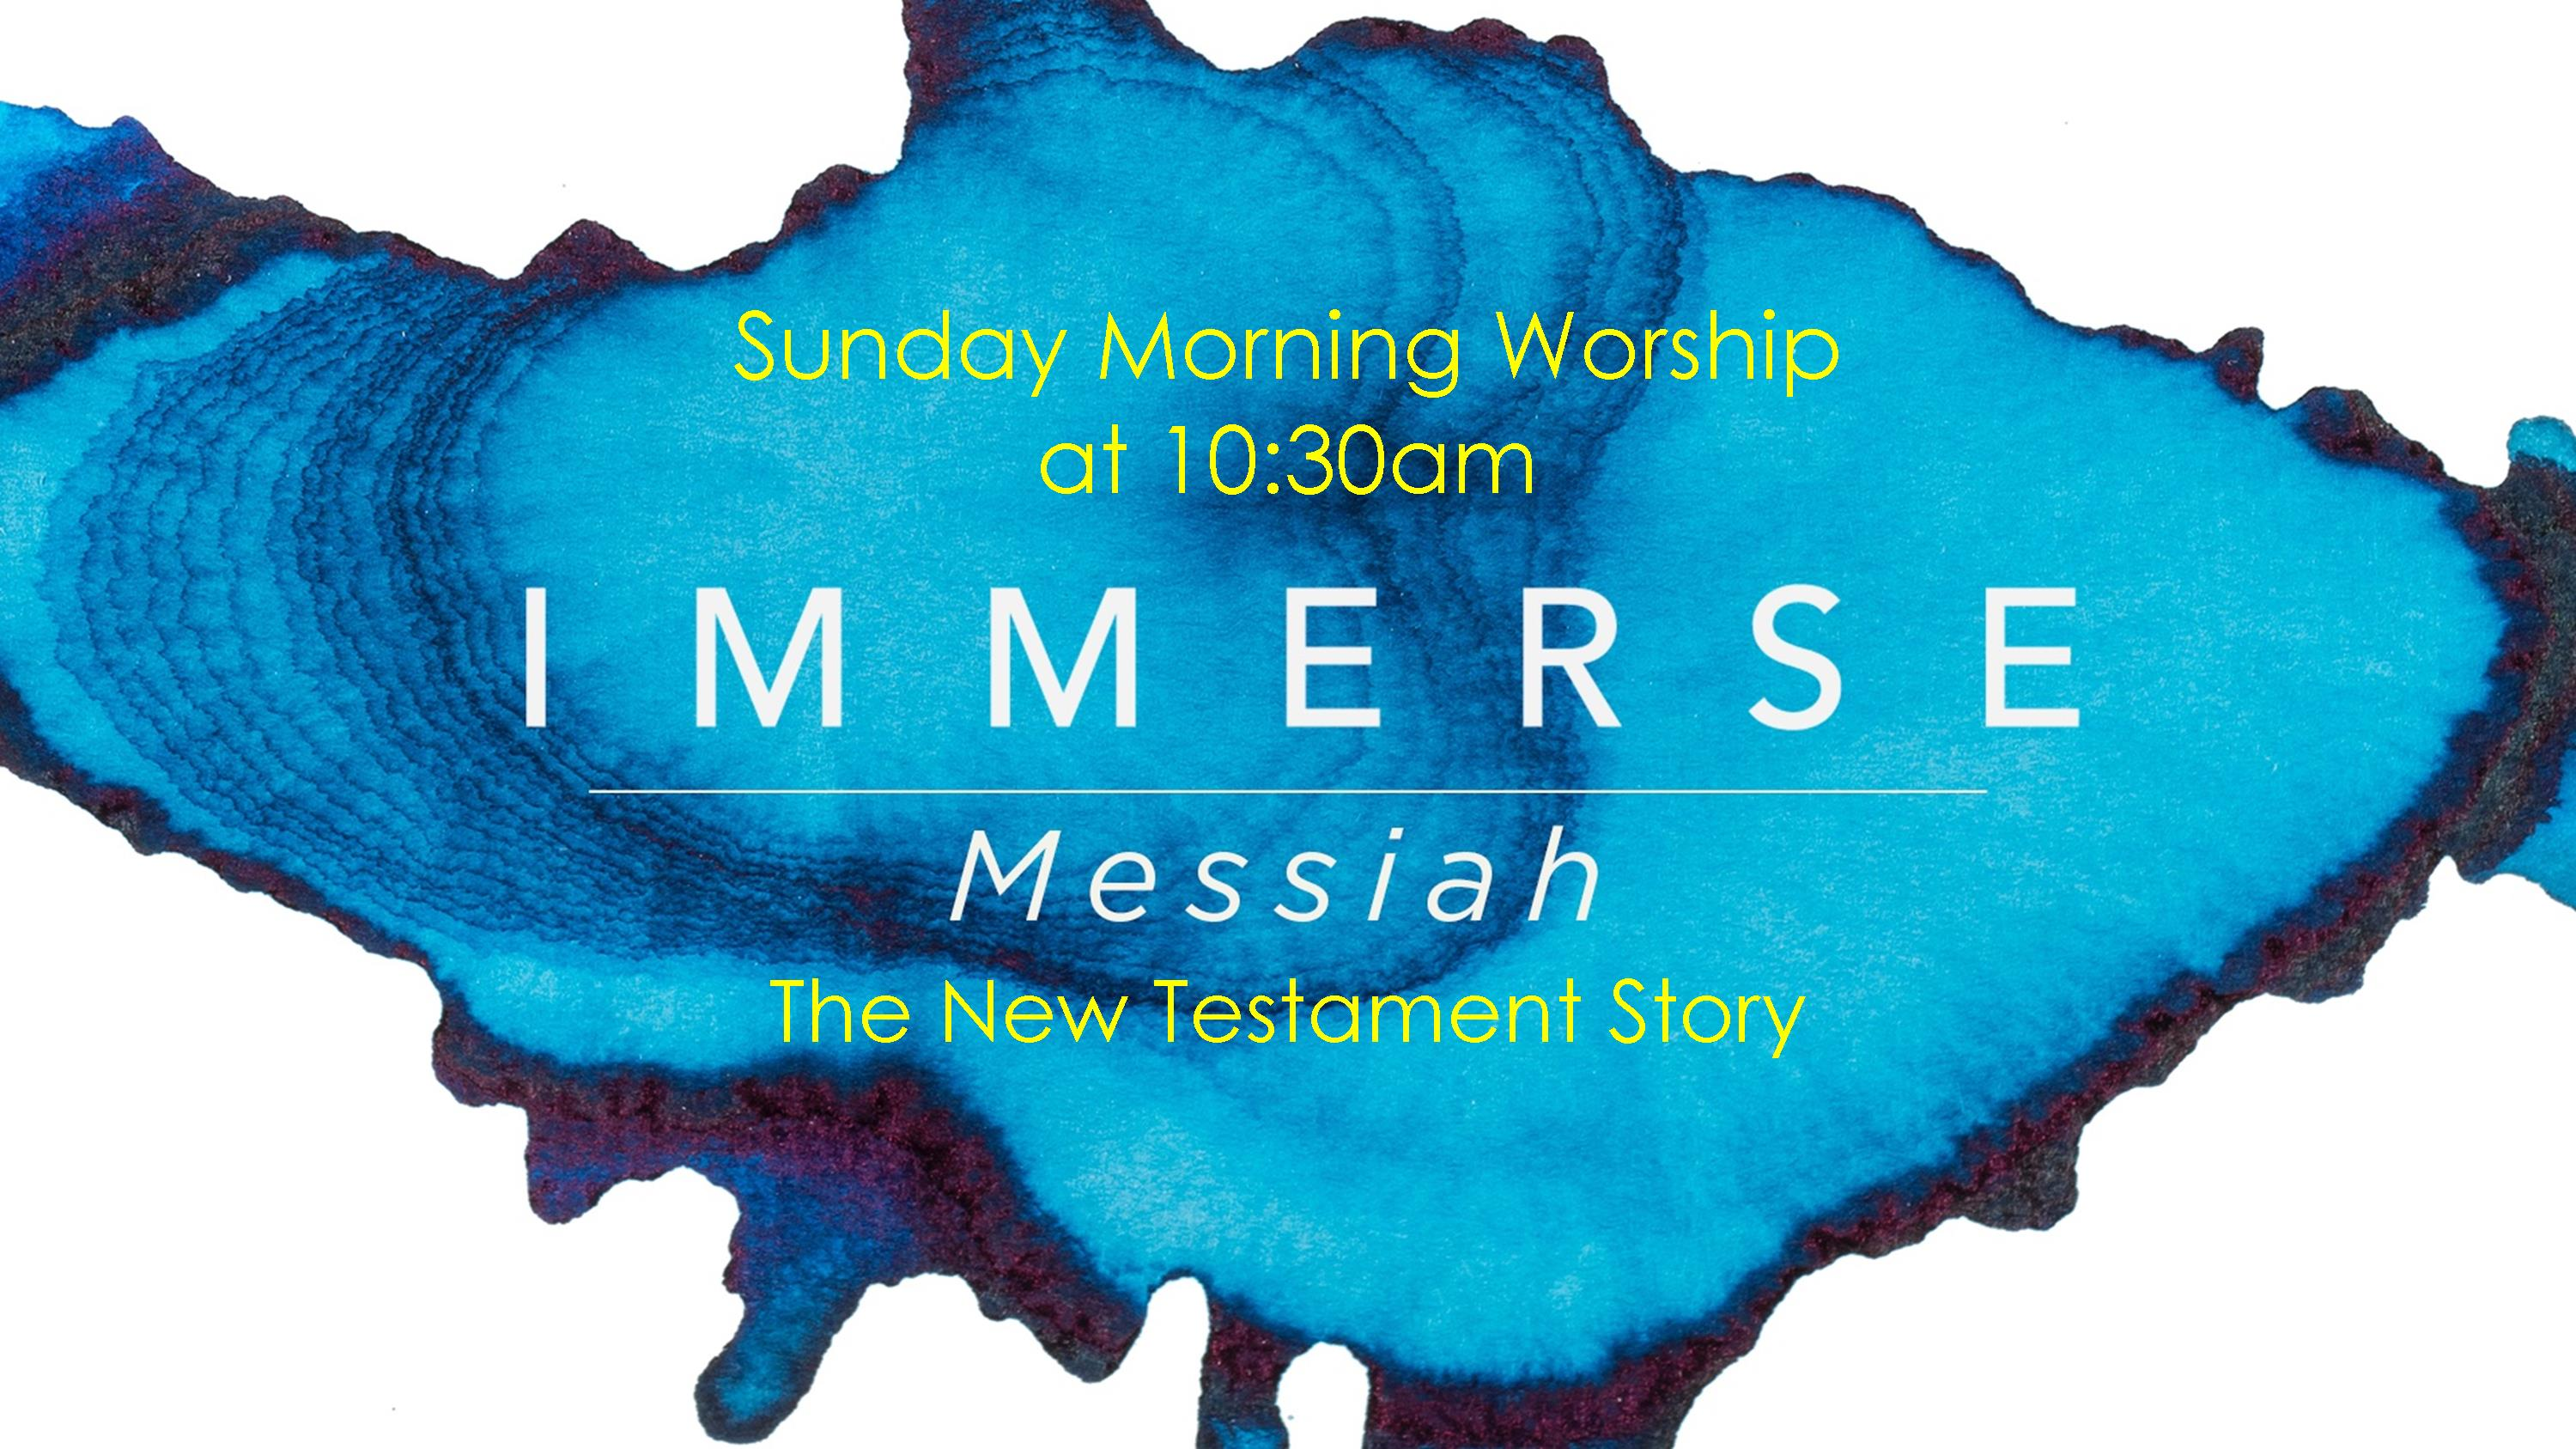 Immerse Messiah sermon series for website